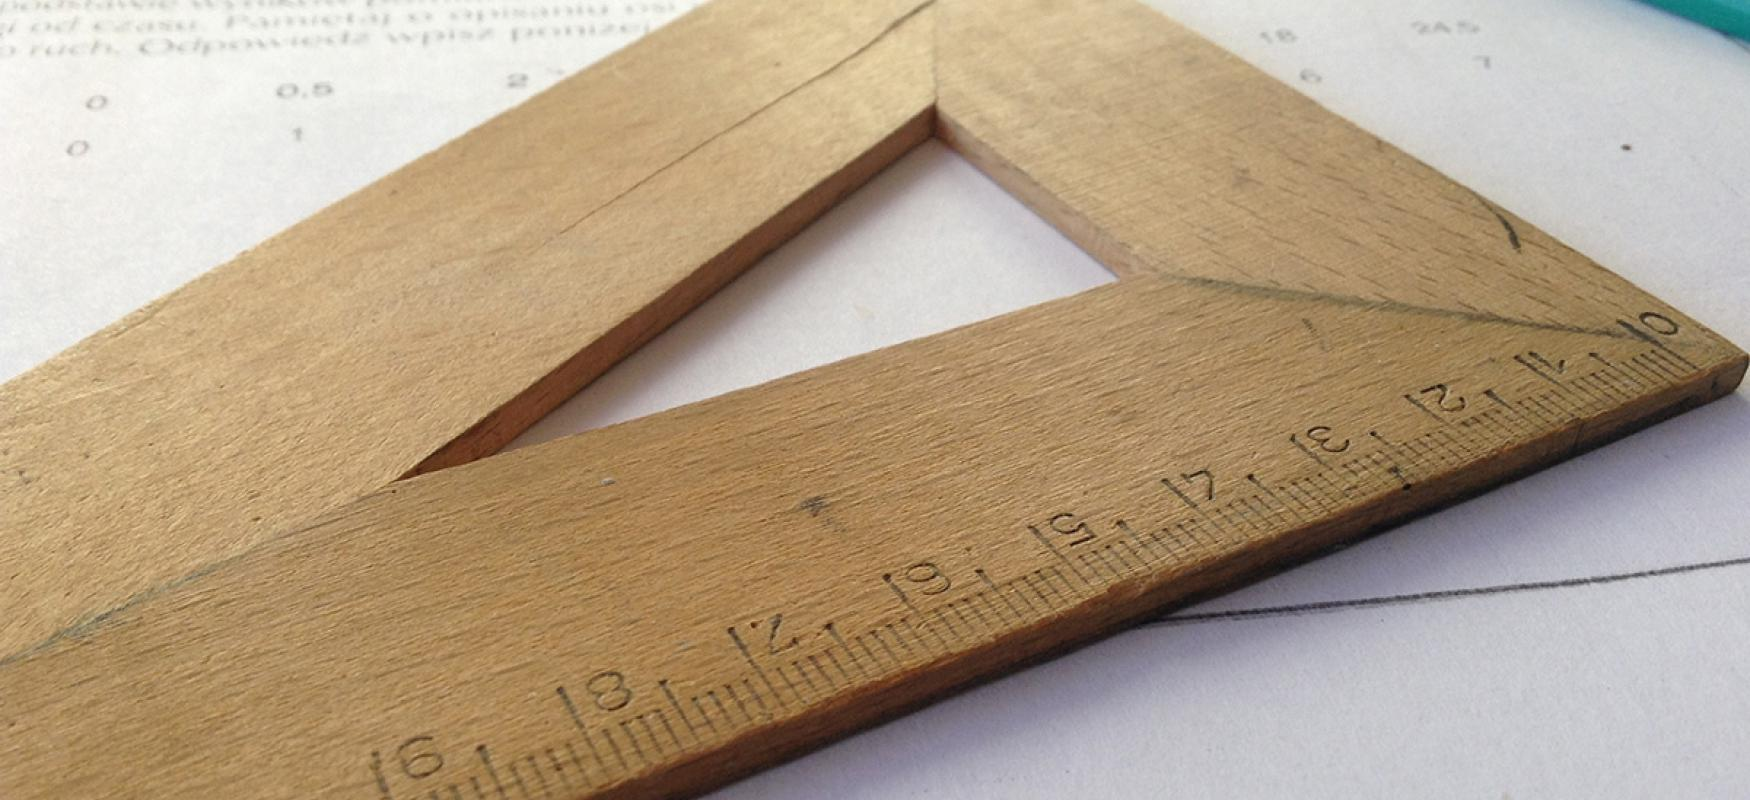 A wooden triangle ruler lying on top of handwritten notes.